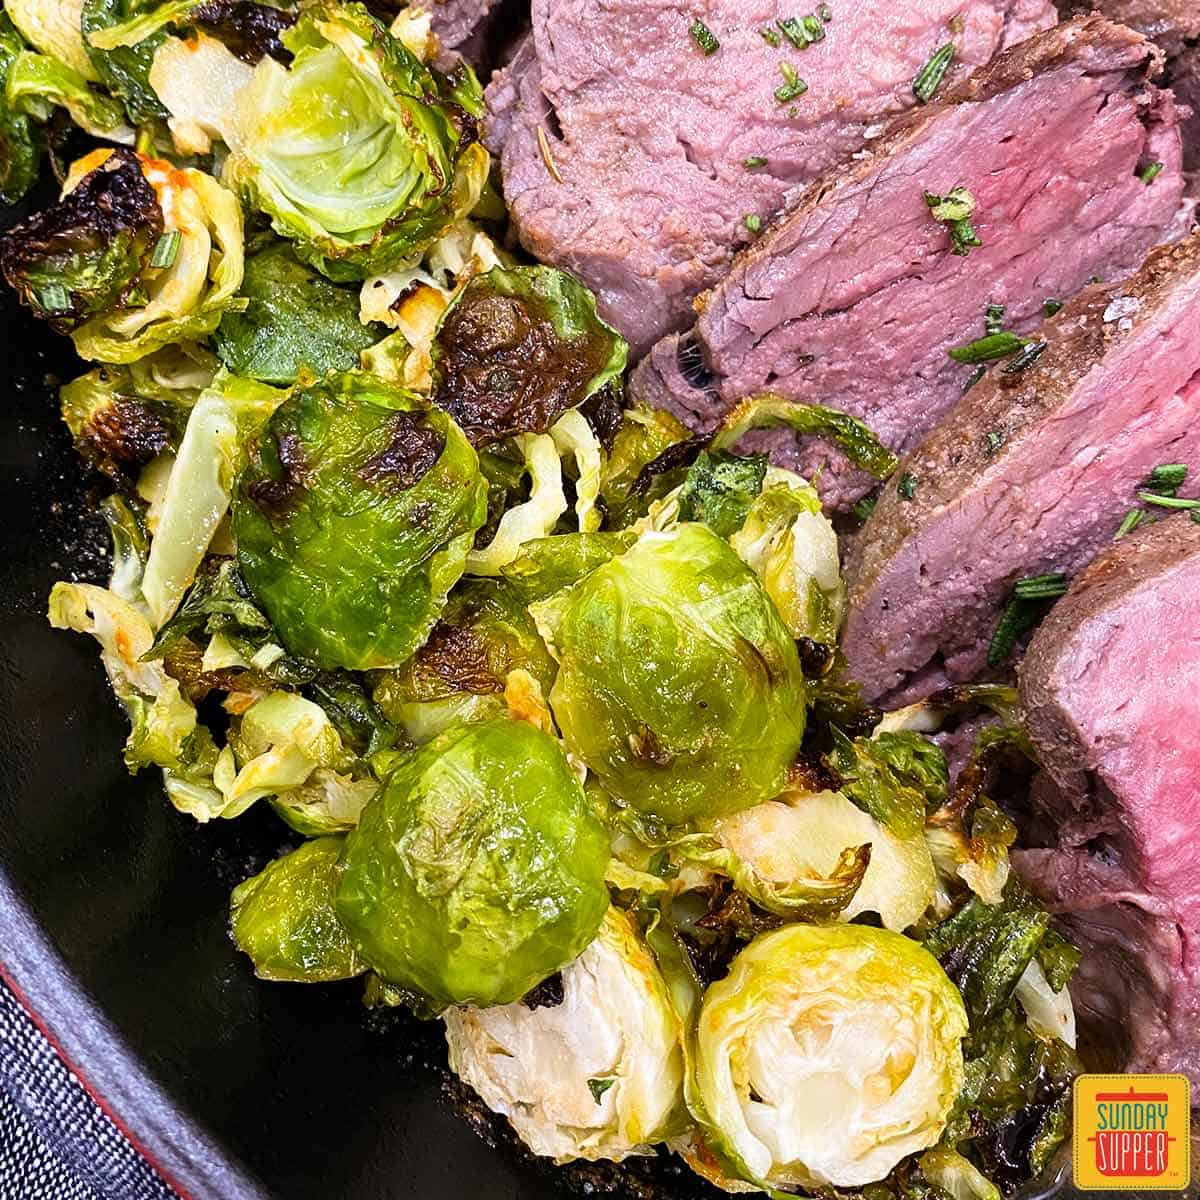 Close up of roasted brussels sprouts next to sous vide tenderloin in a skillet